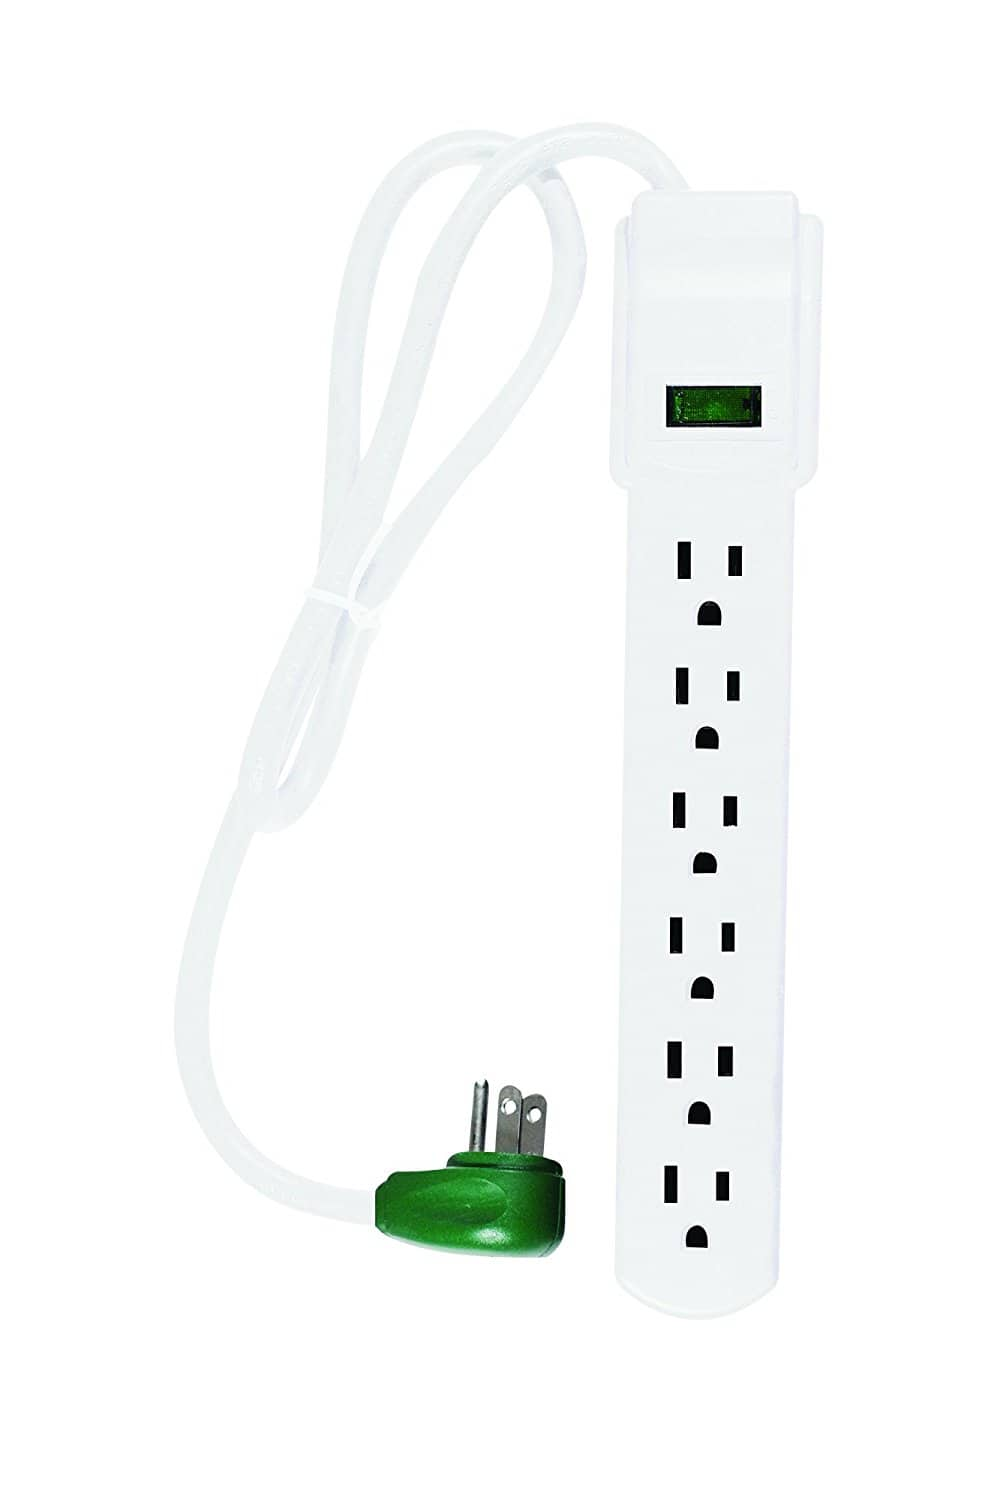 Right angle plug 6 Outlet Surge Protector w/ 2.5' Cord $4.57 add-on item